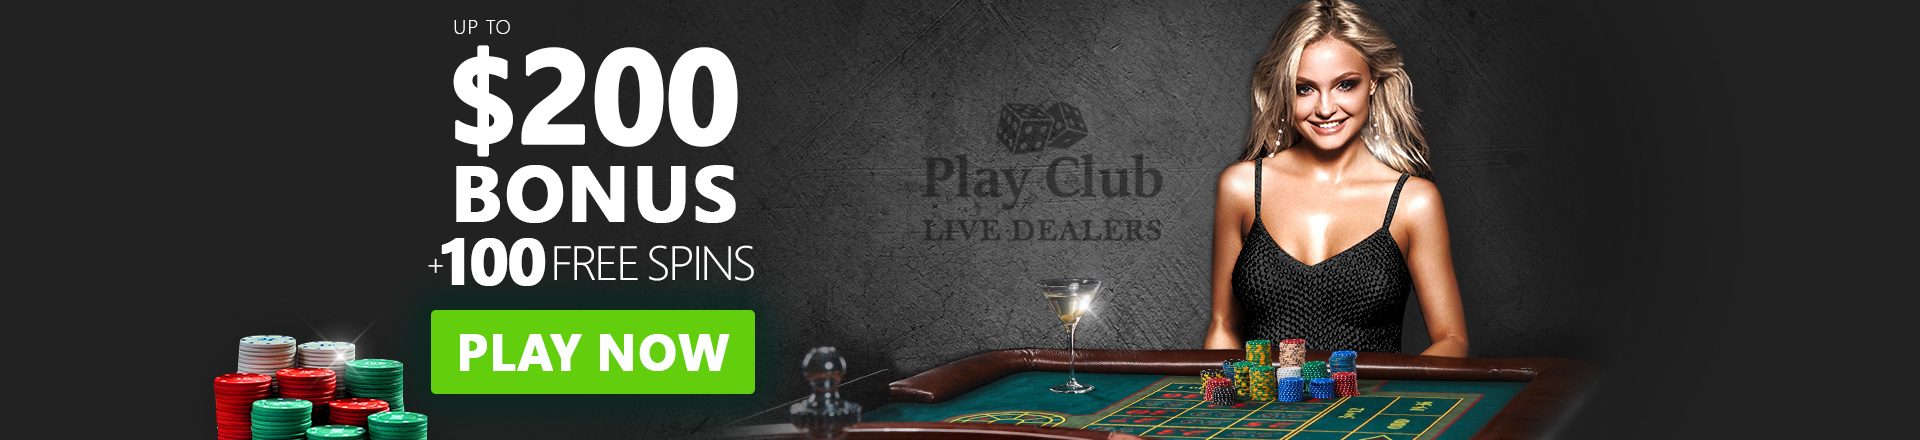 free spins welcome bonus playclub